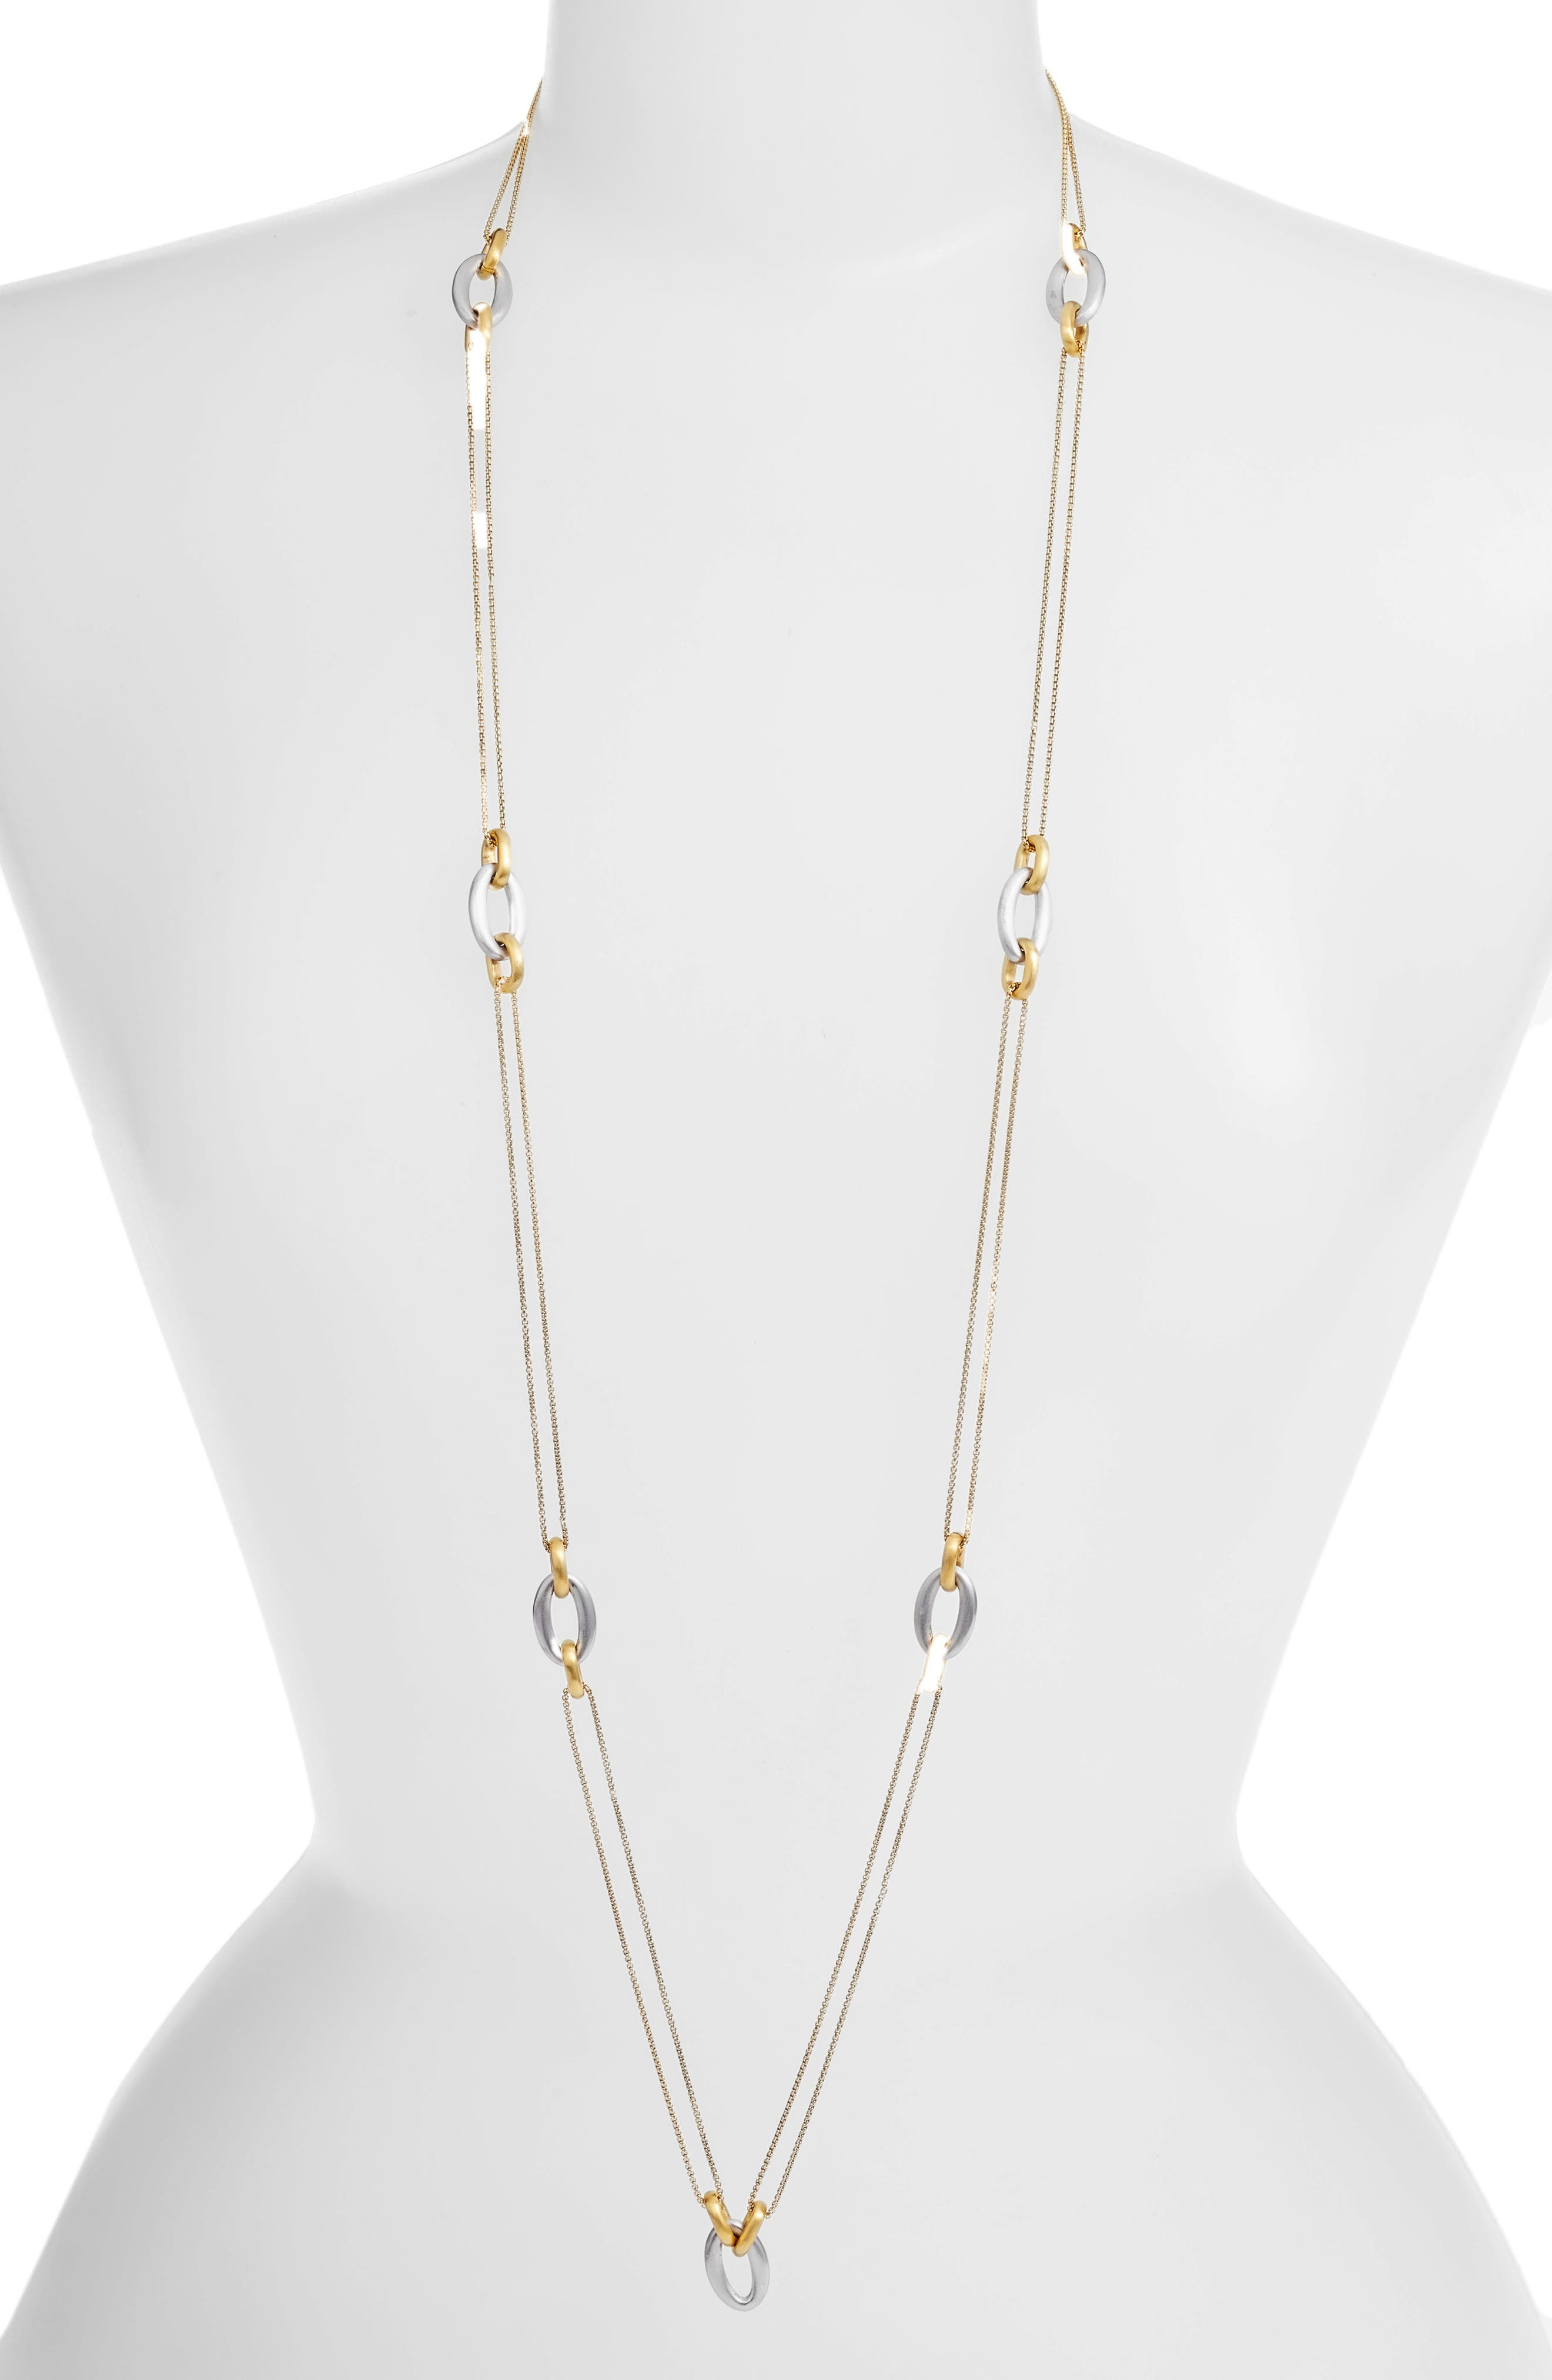 Lagoon Link Station Necklace,                             Main thumbnail 1, color,                             710